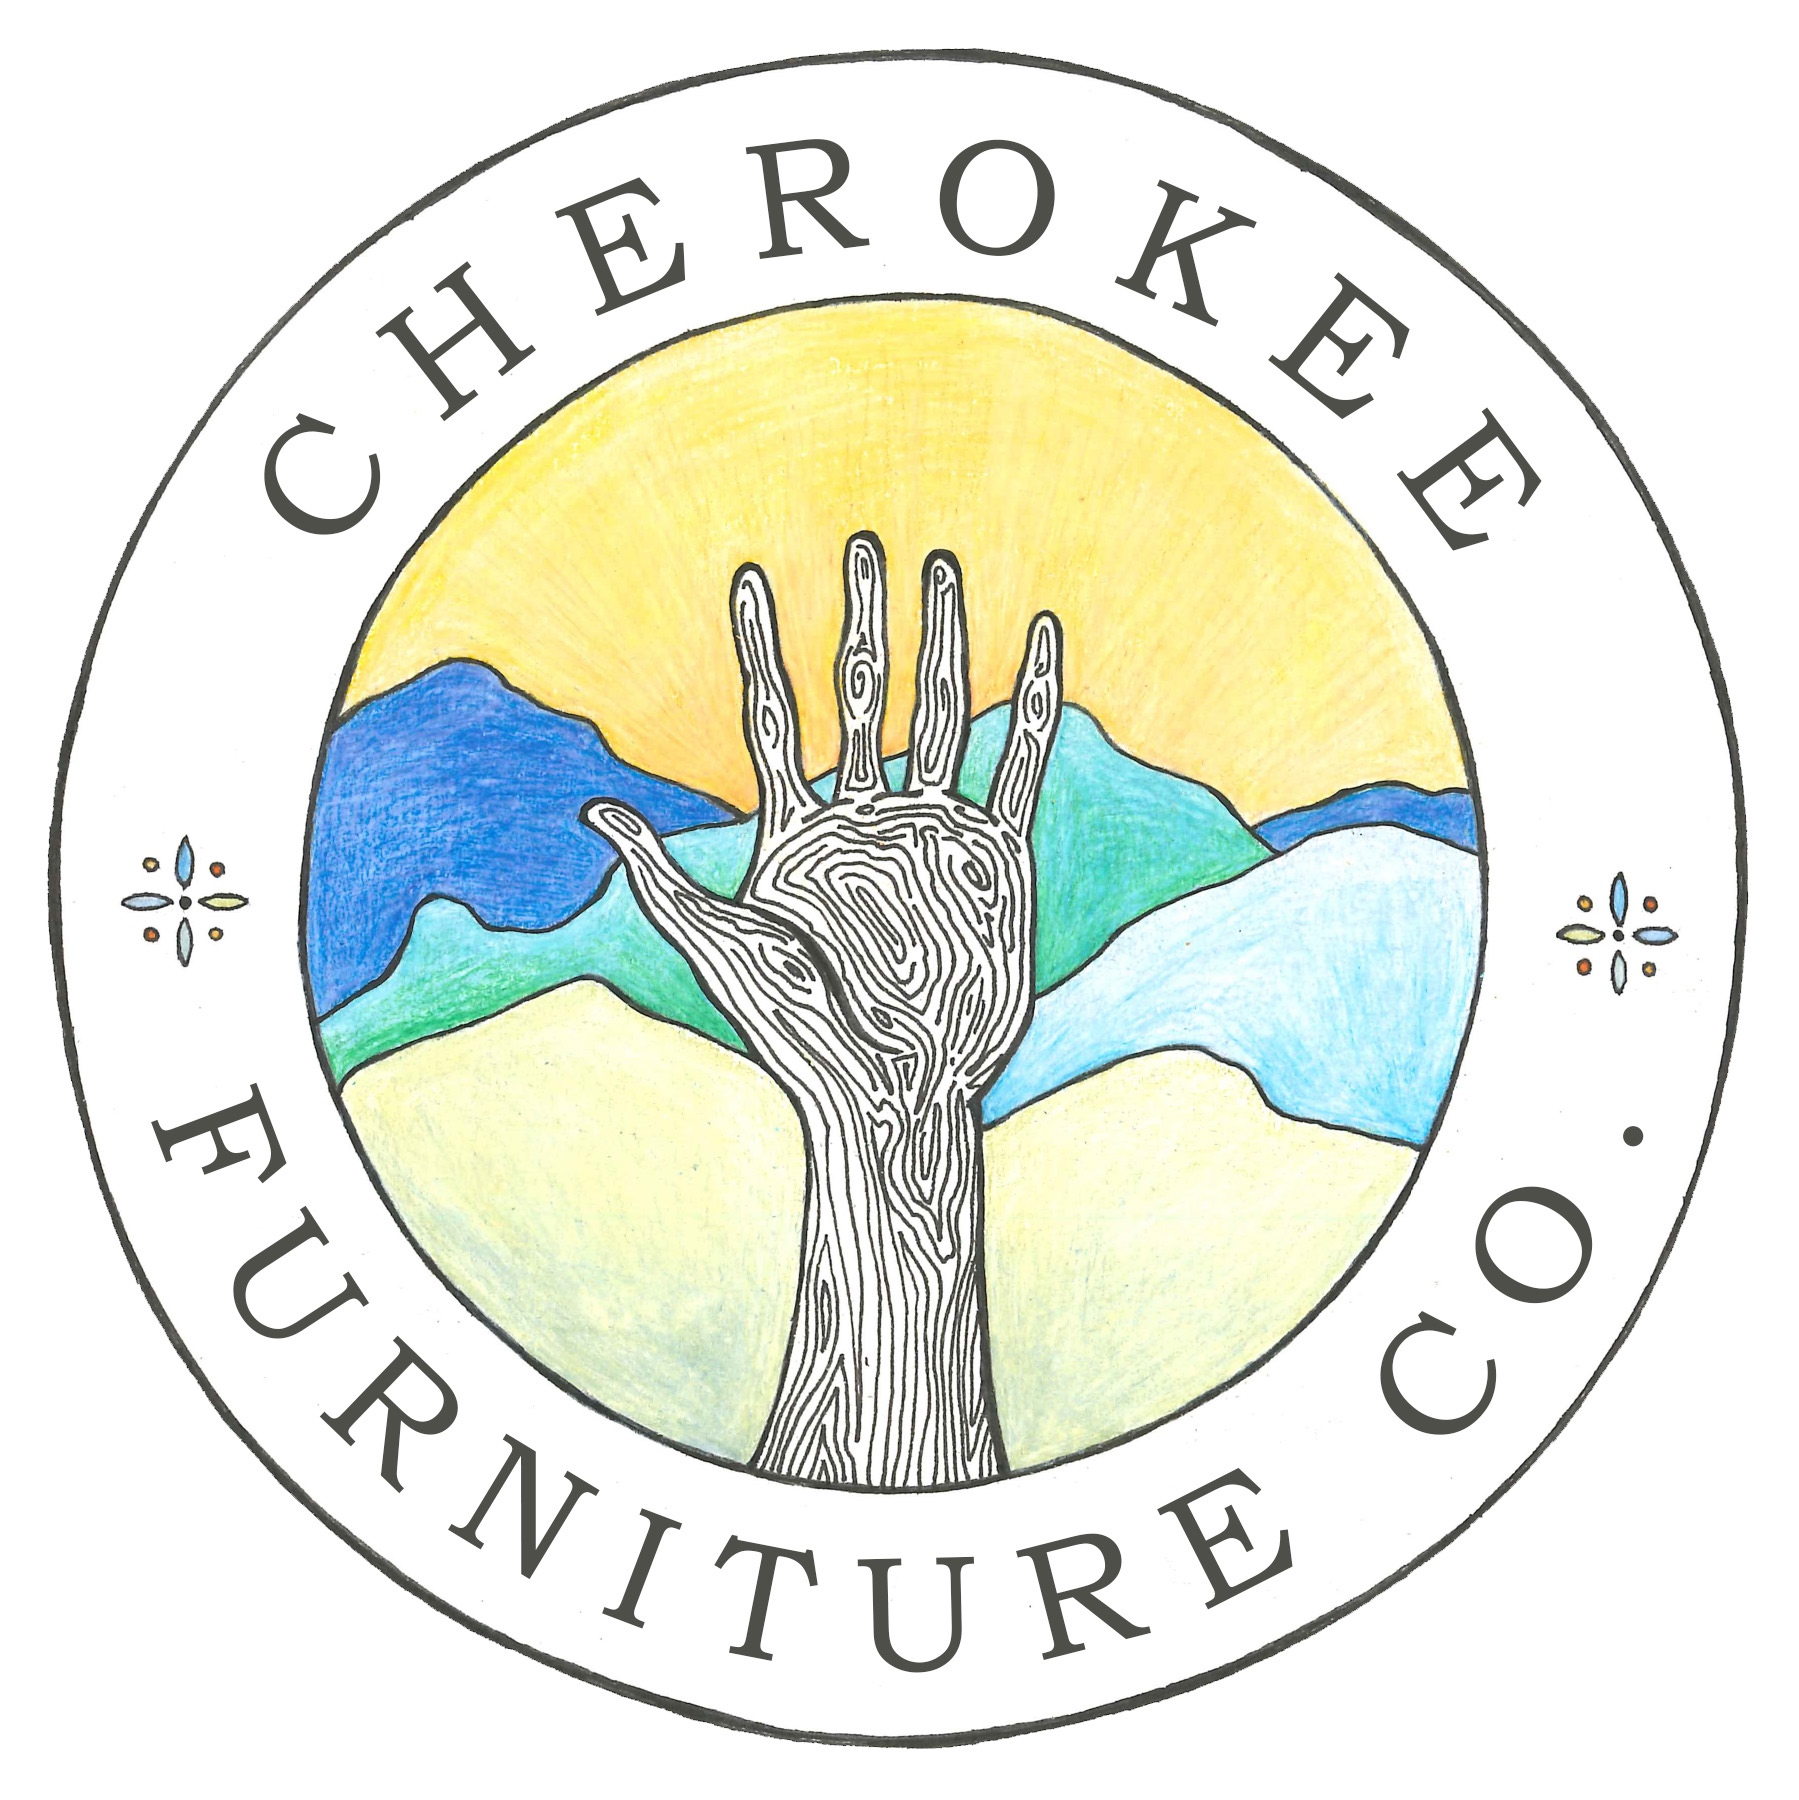 CherokeeFurnitureLogoCircleCrop+copy.jpg